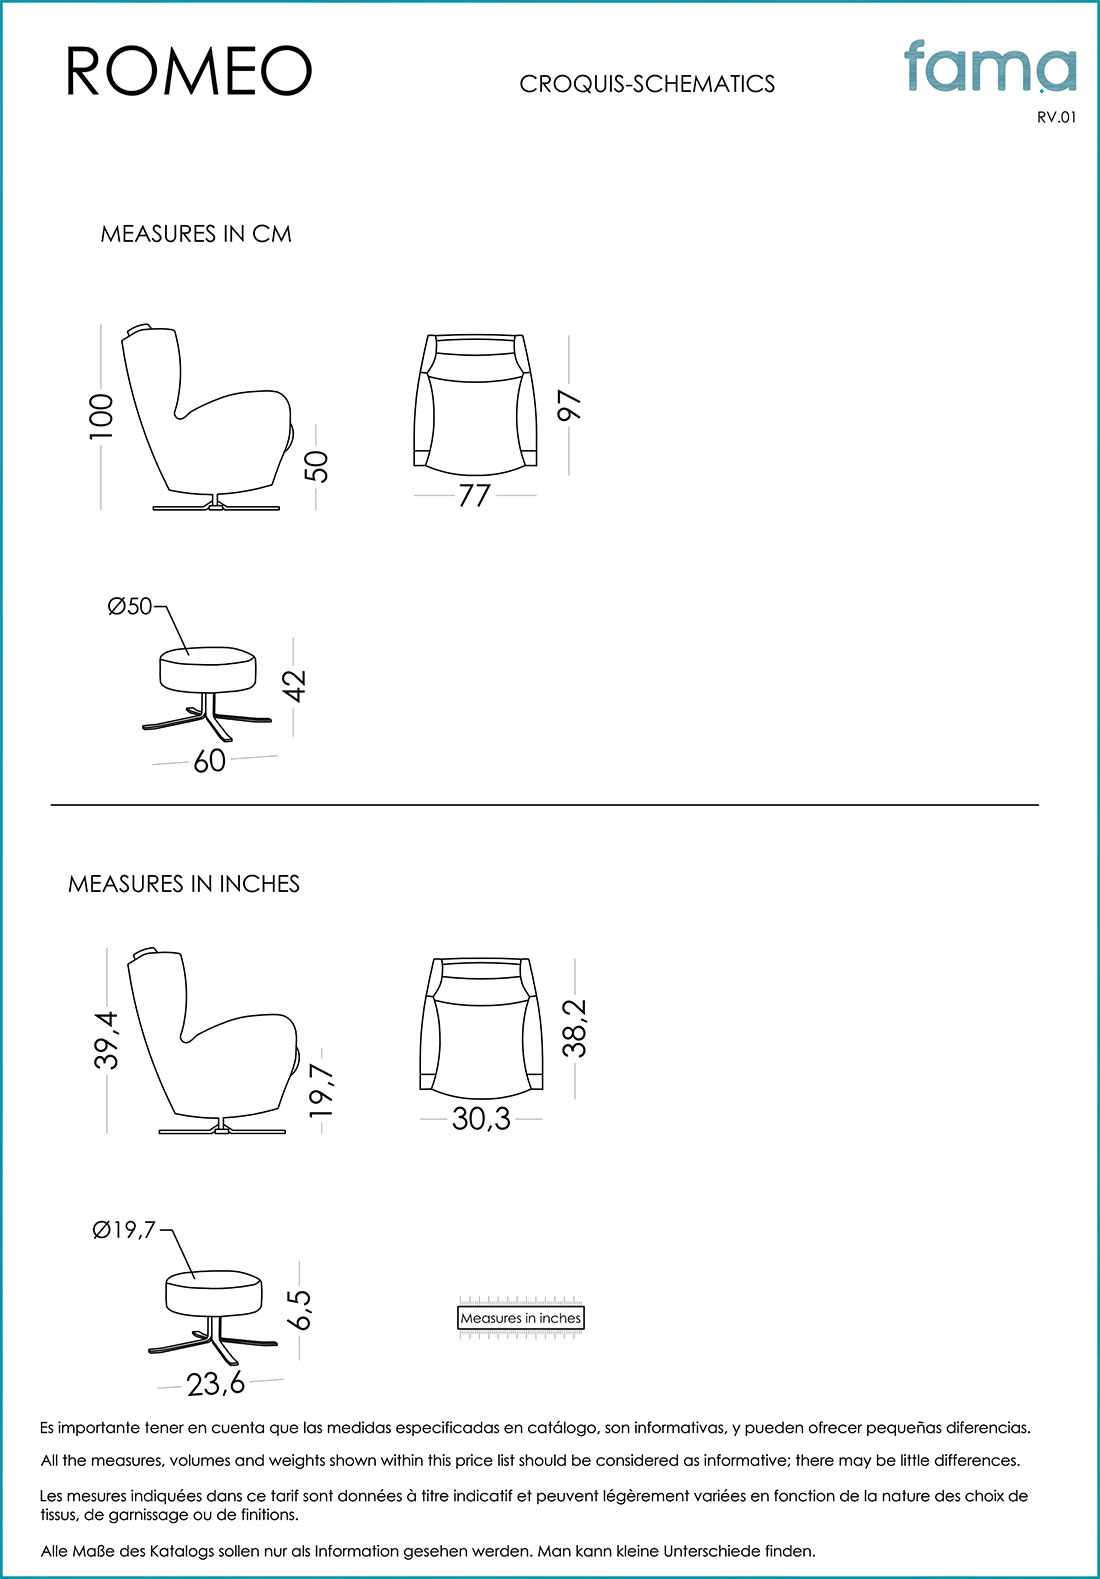 contemporary-chair-famaliving-montreal-romeo-specification-sheet